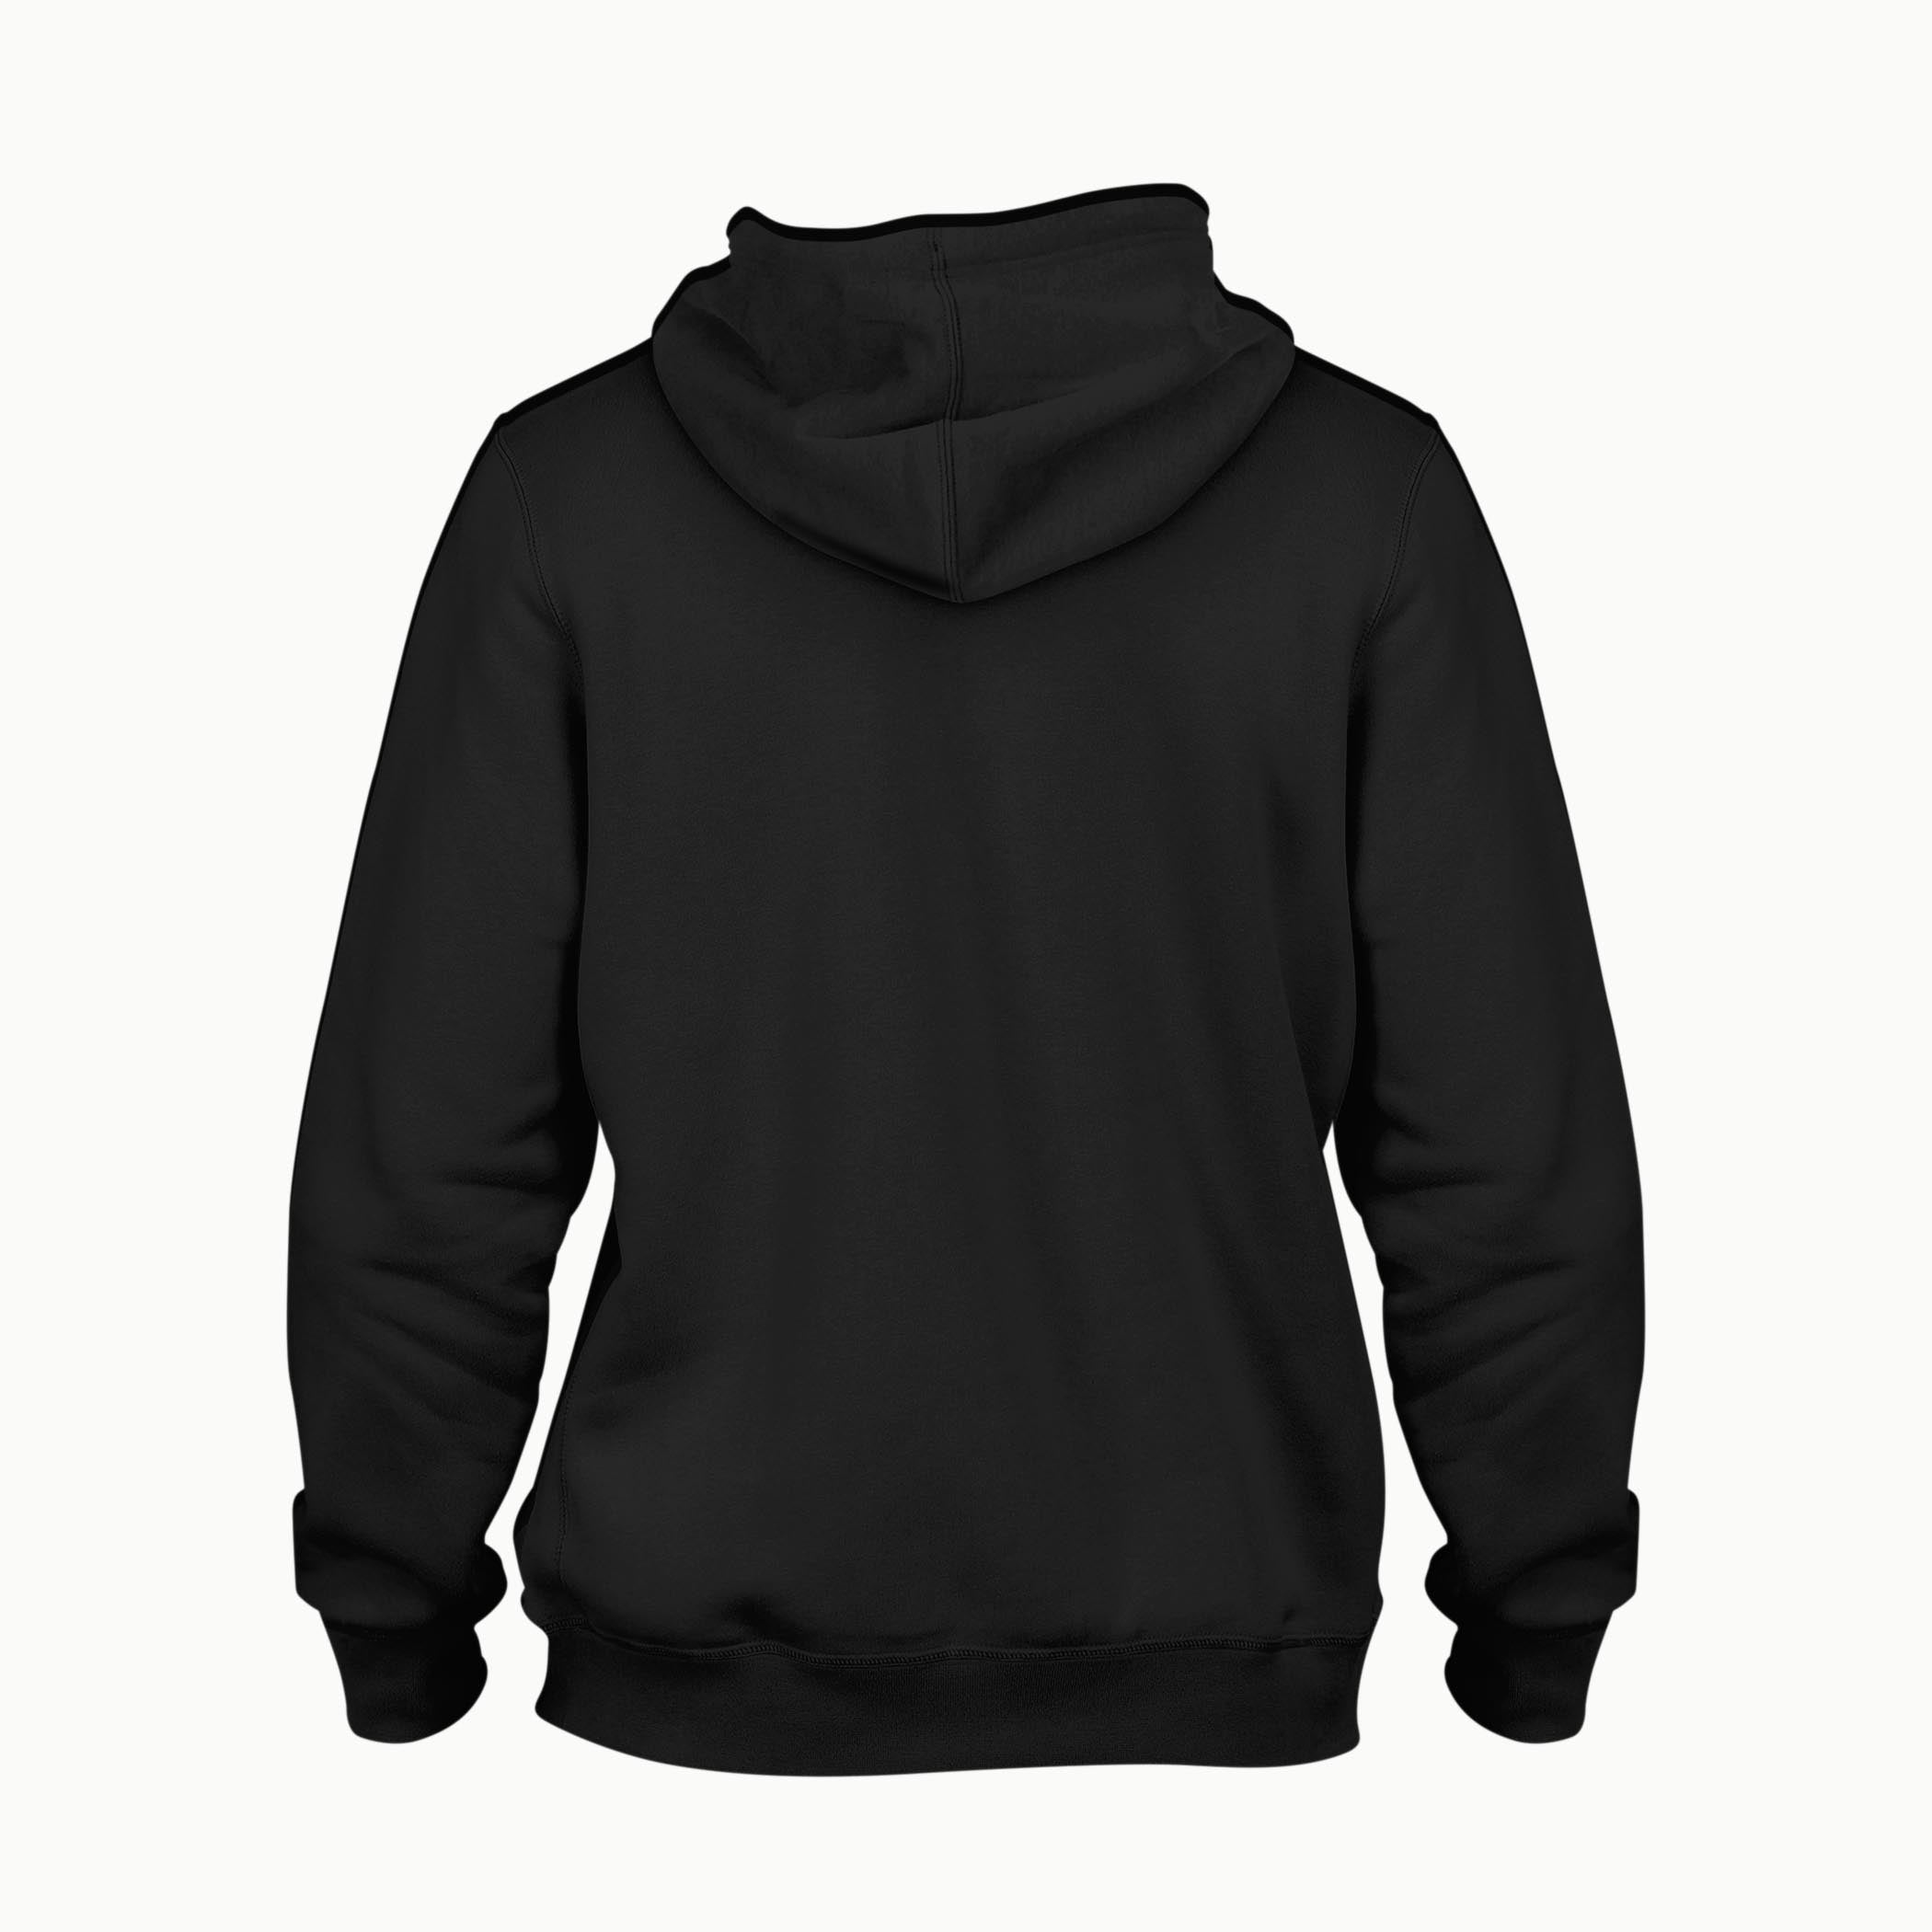 Team Hundred KMPH | Hoodie